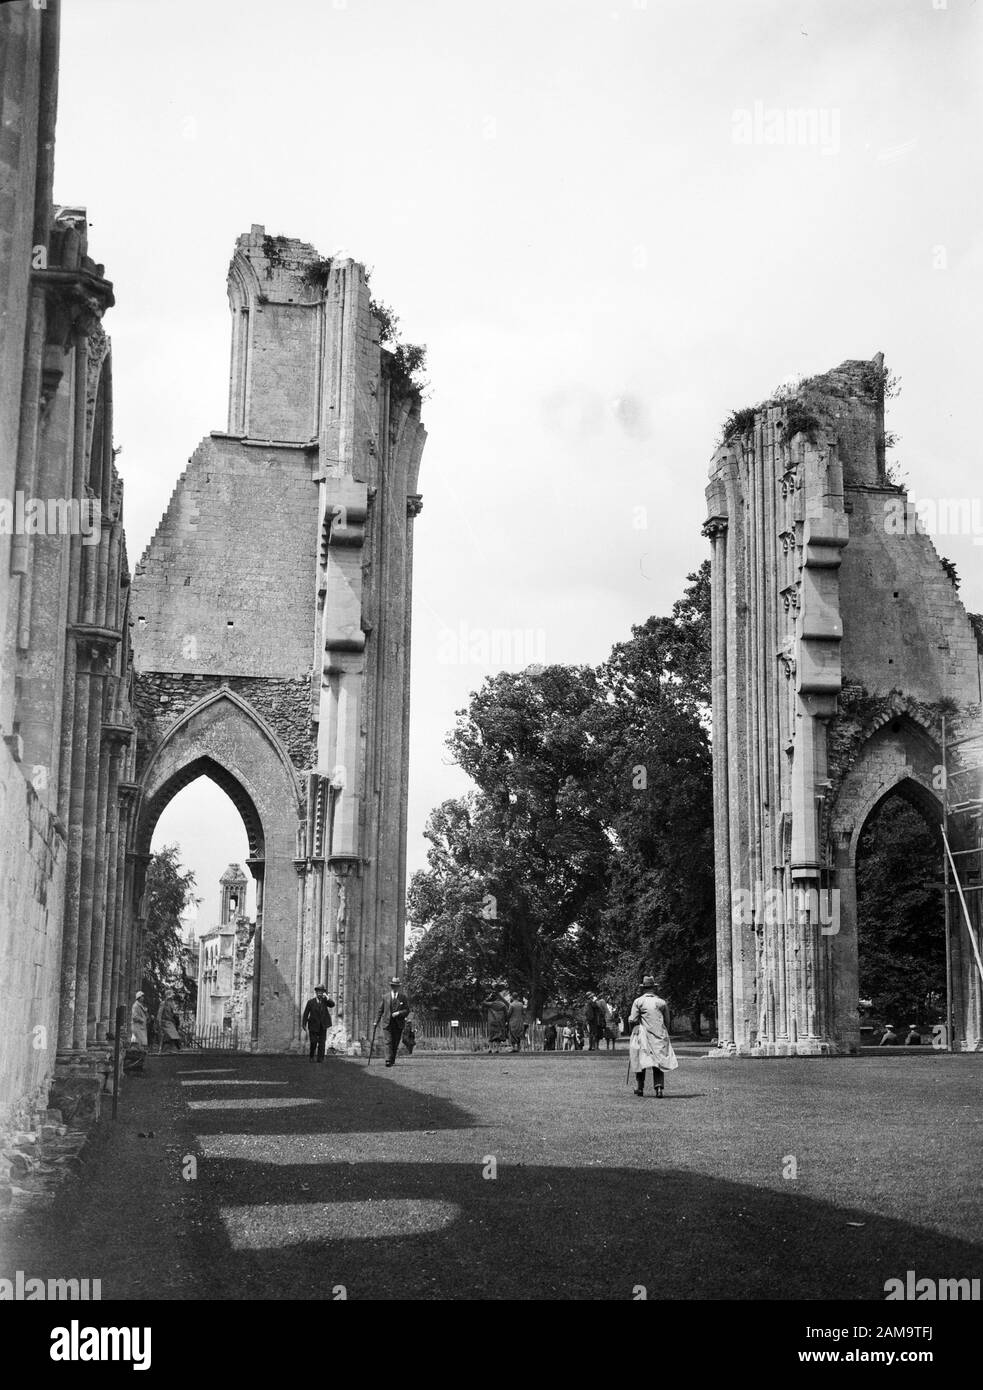 Archive image, circa 1920s, of visitors at Glastonbury Abbey, Somerset. Scanned from original glass negative. Stock Photo